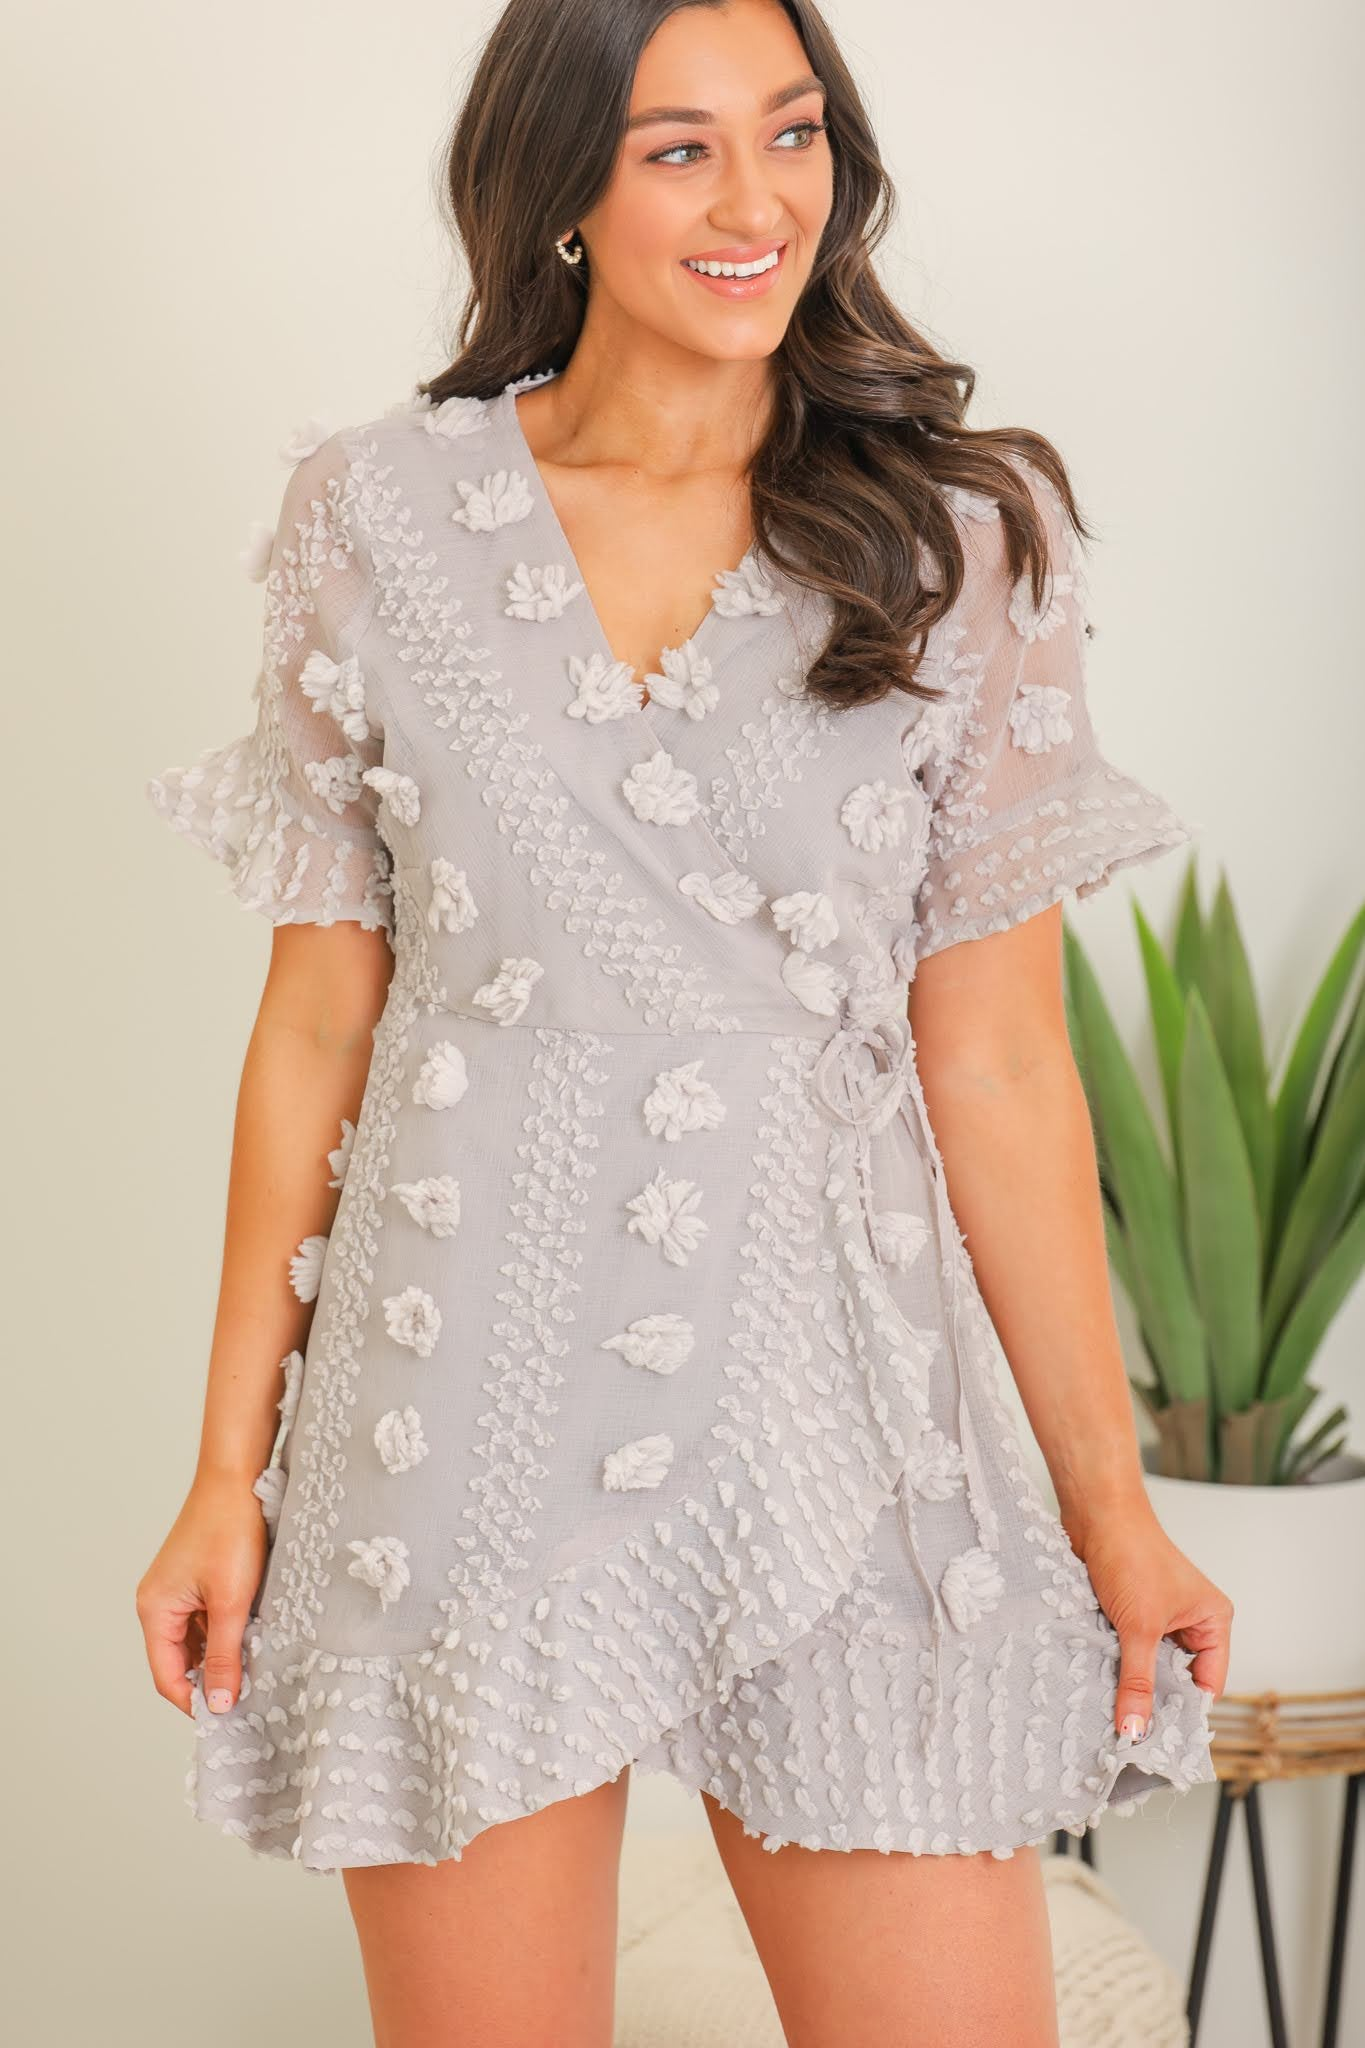 Hold Your Head Up High Pom Wrap Dress